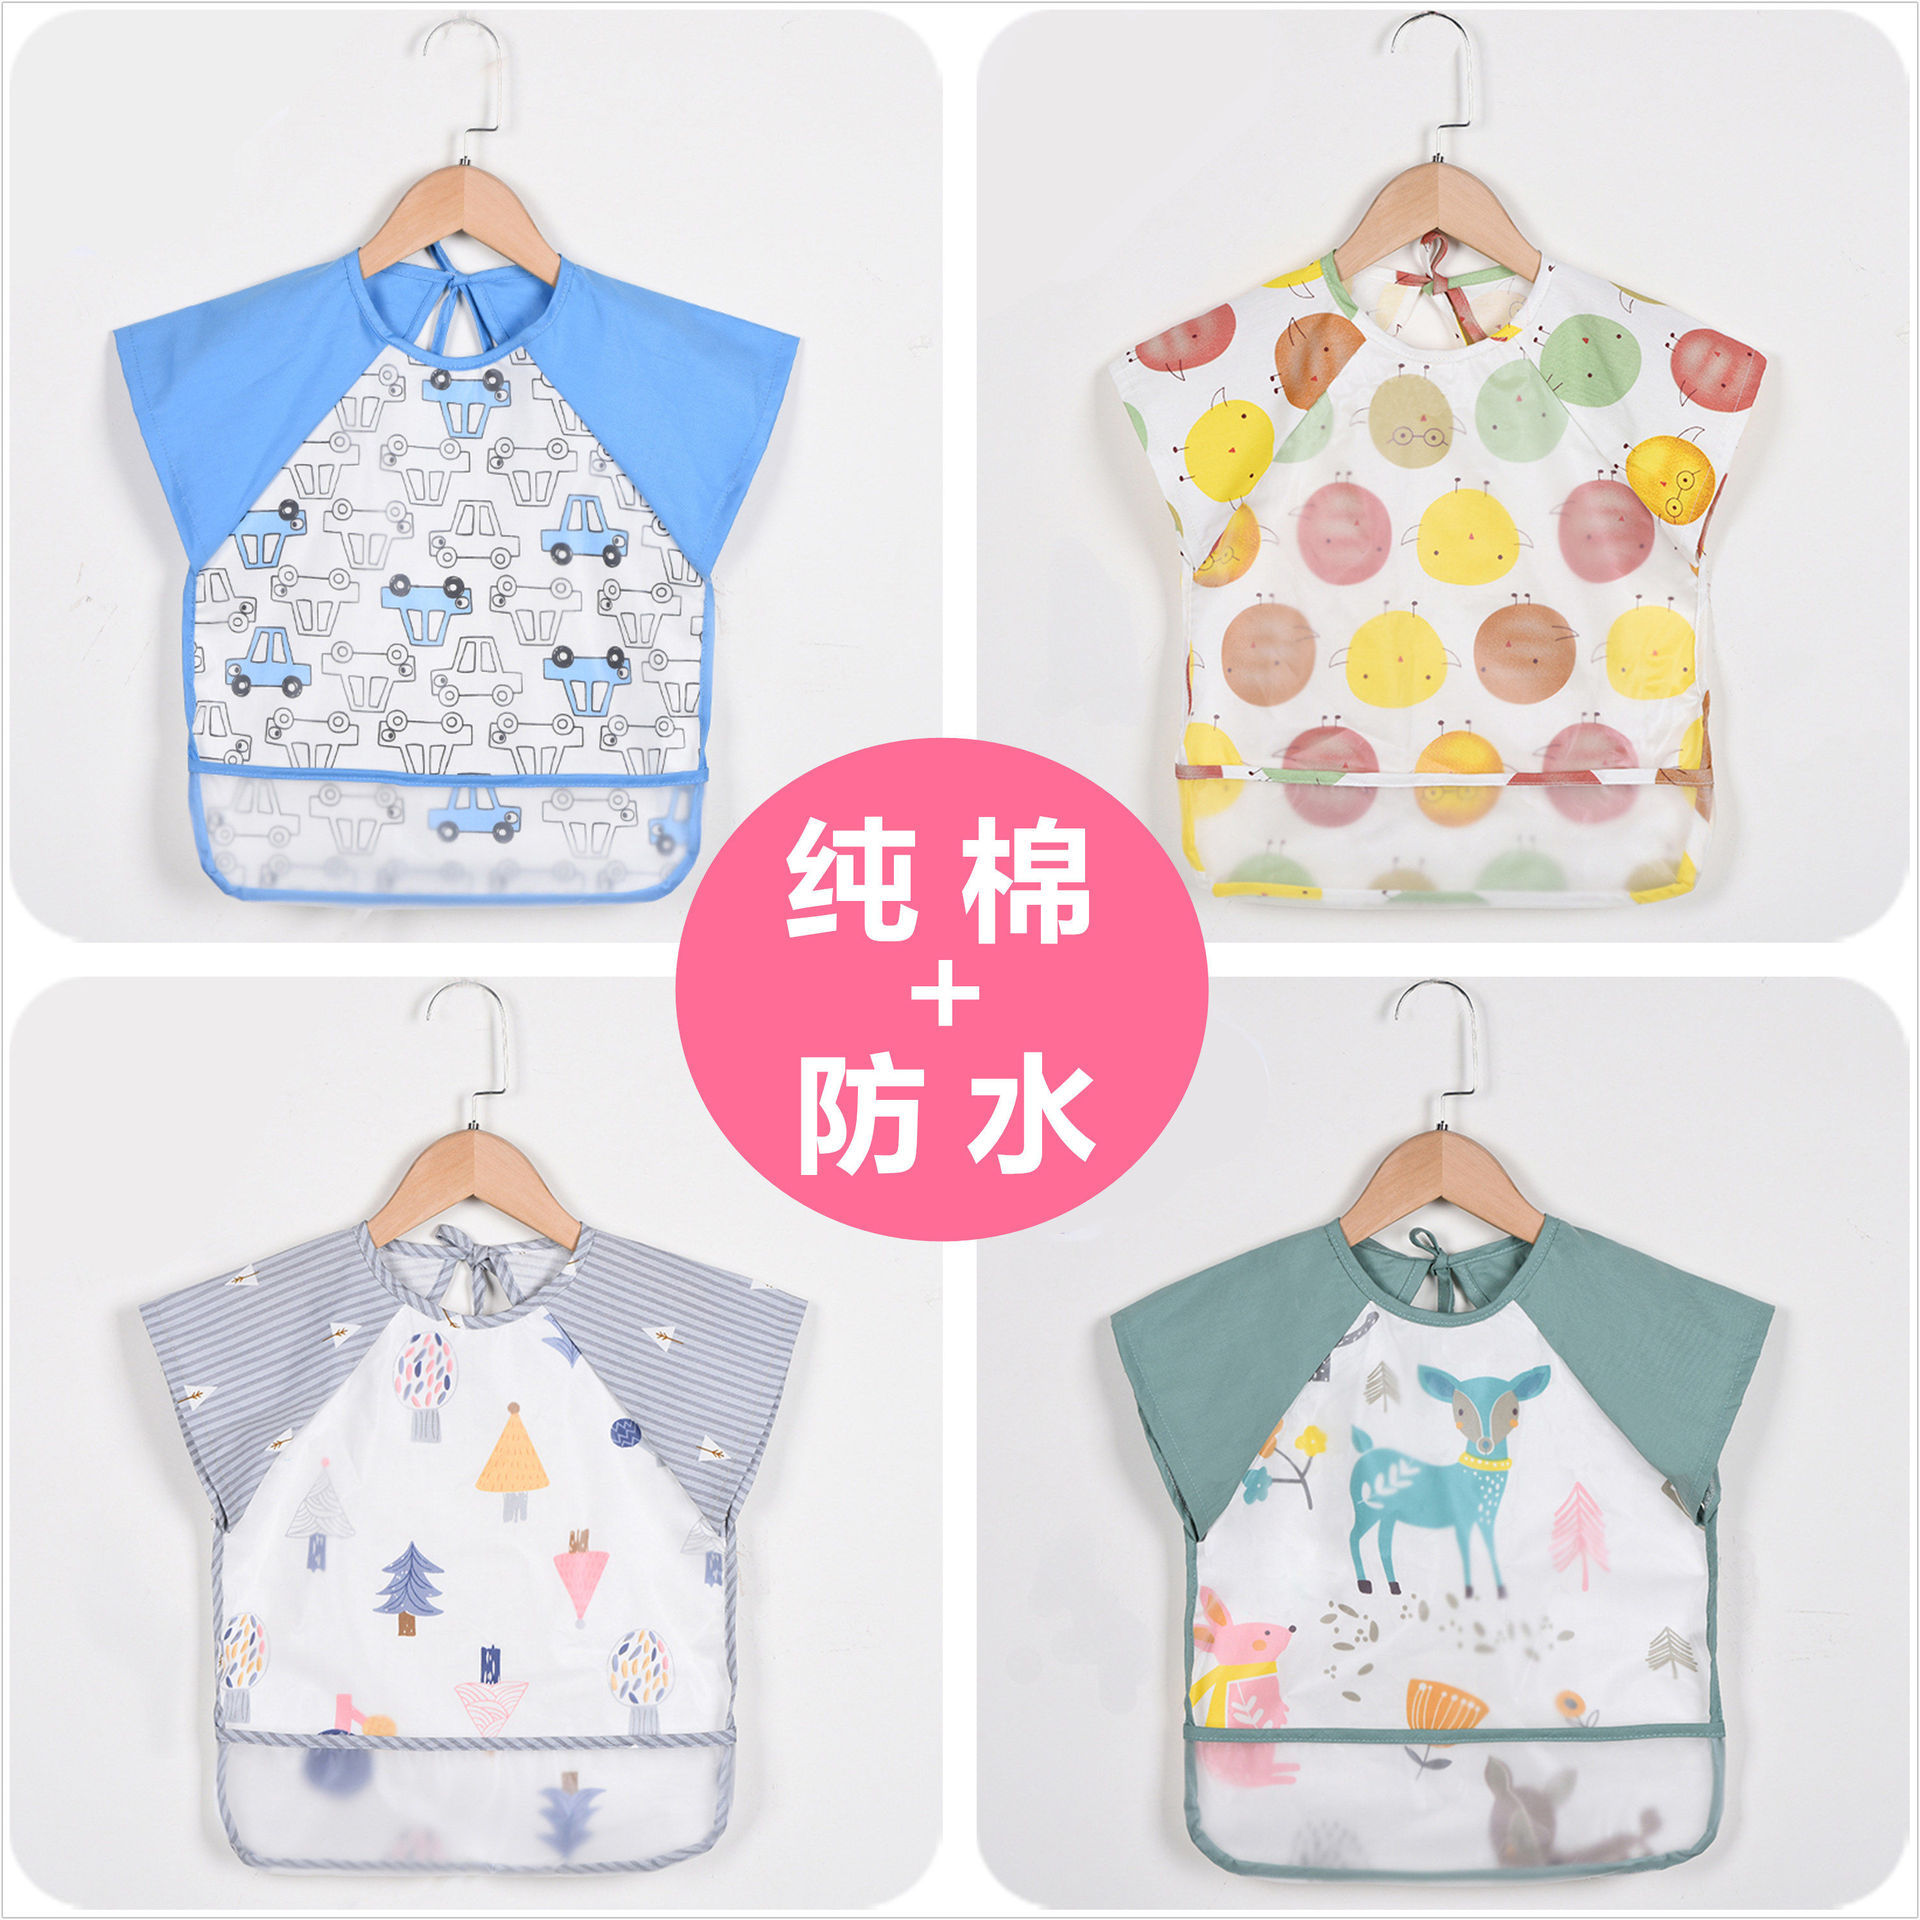 Dress Waterproof Apron Overclothes Anti-Pure Cotton Children Baby Eating Clothes Upside-down Coat Protective Clothing Men Cotton